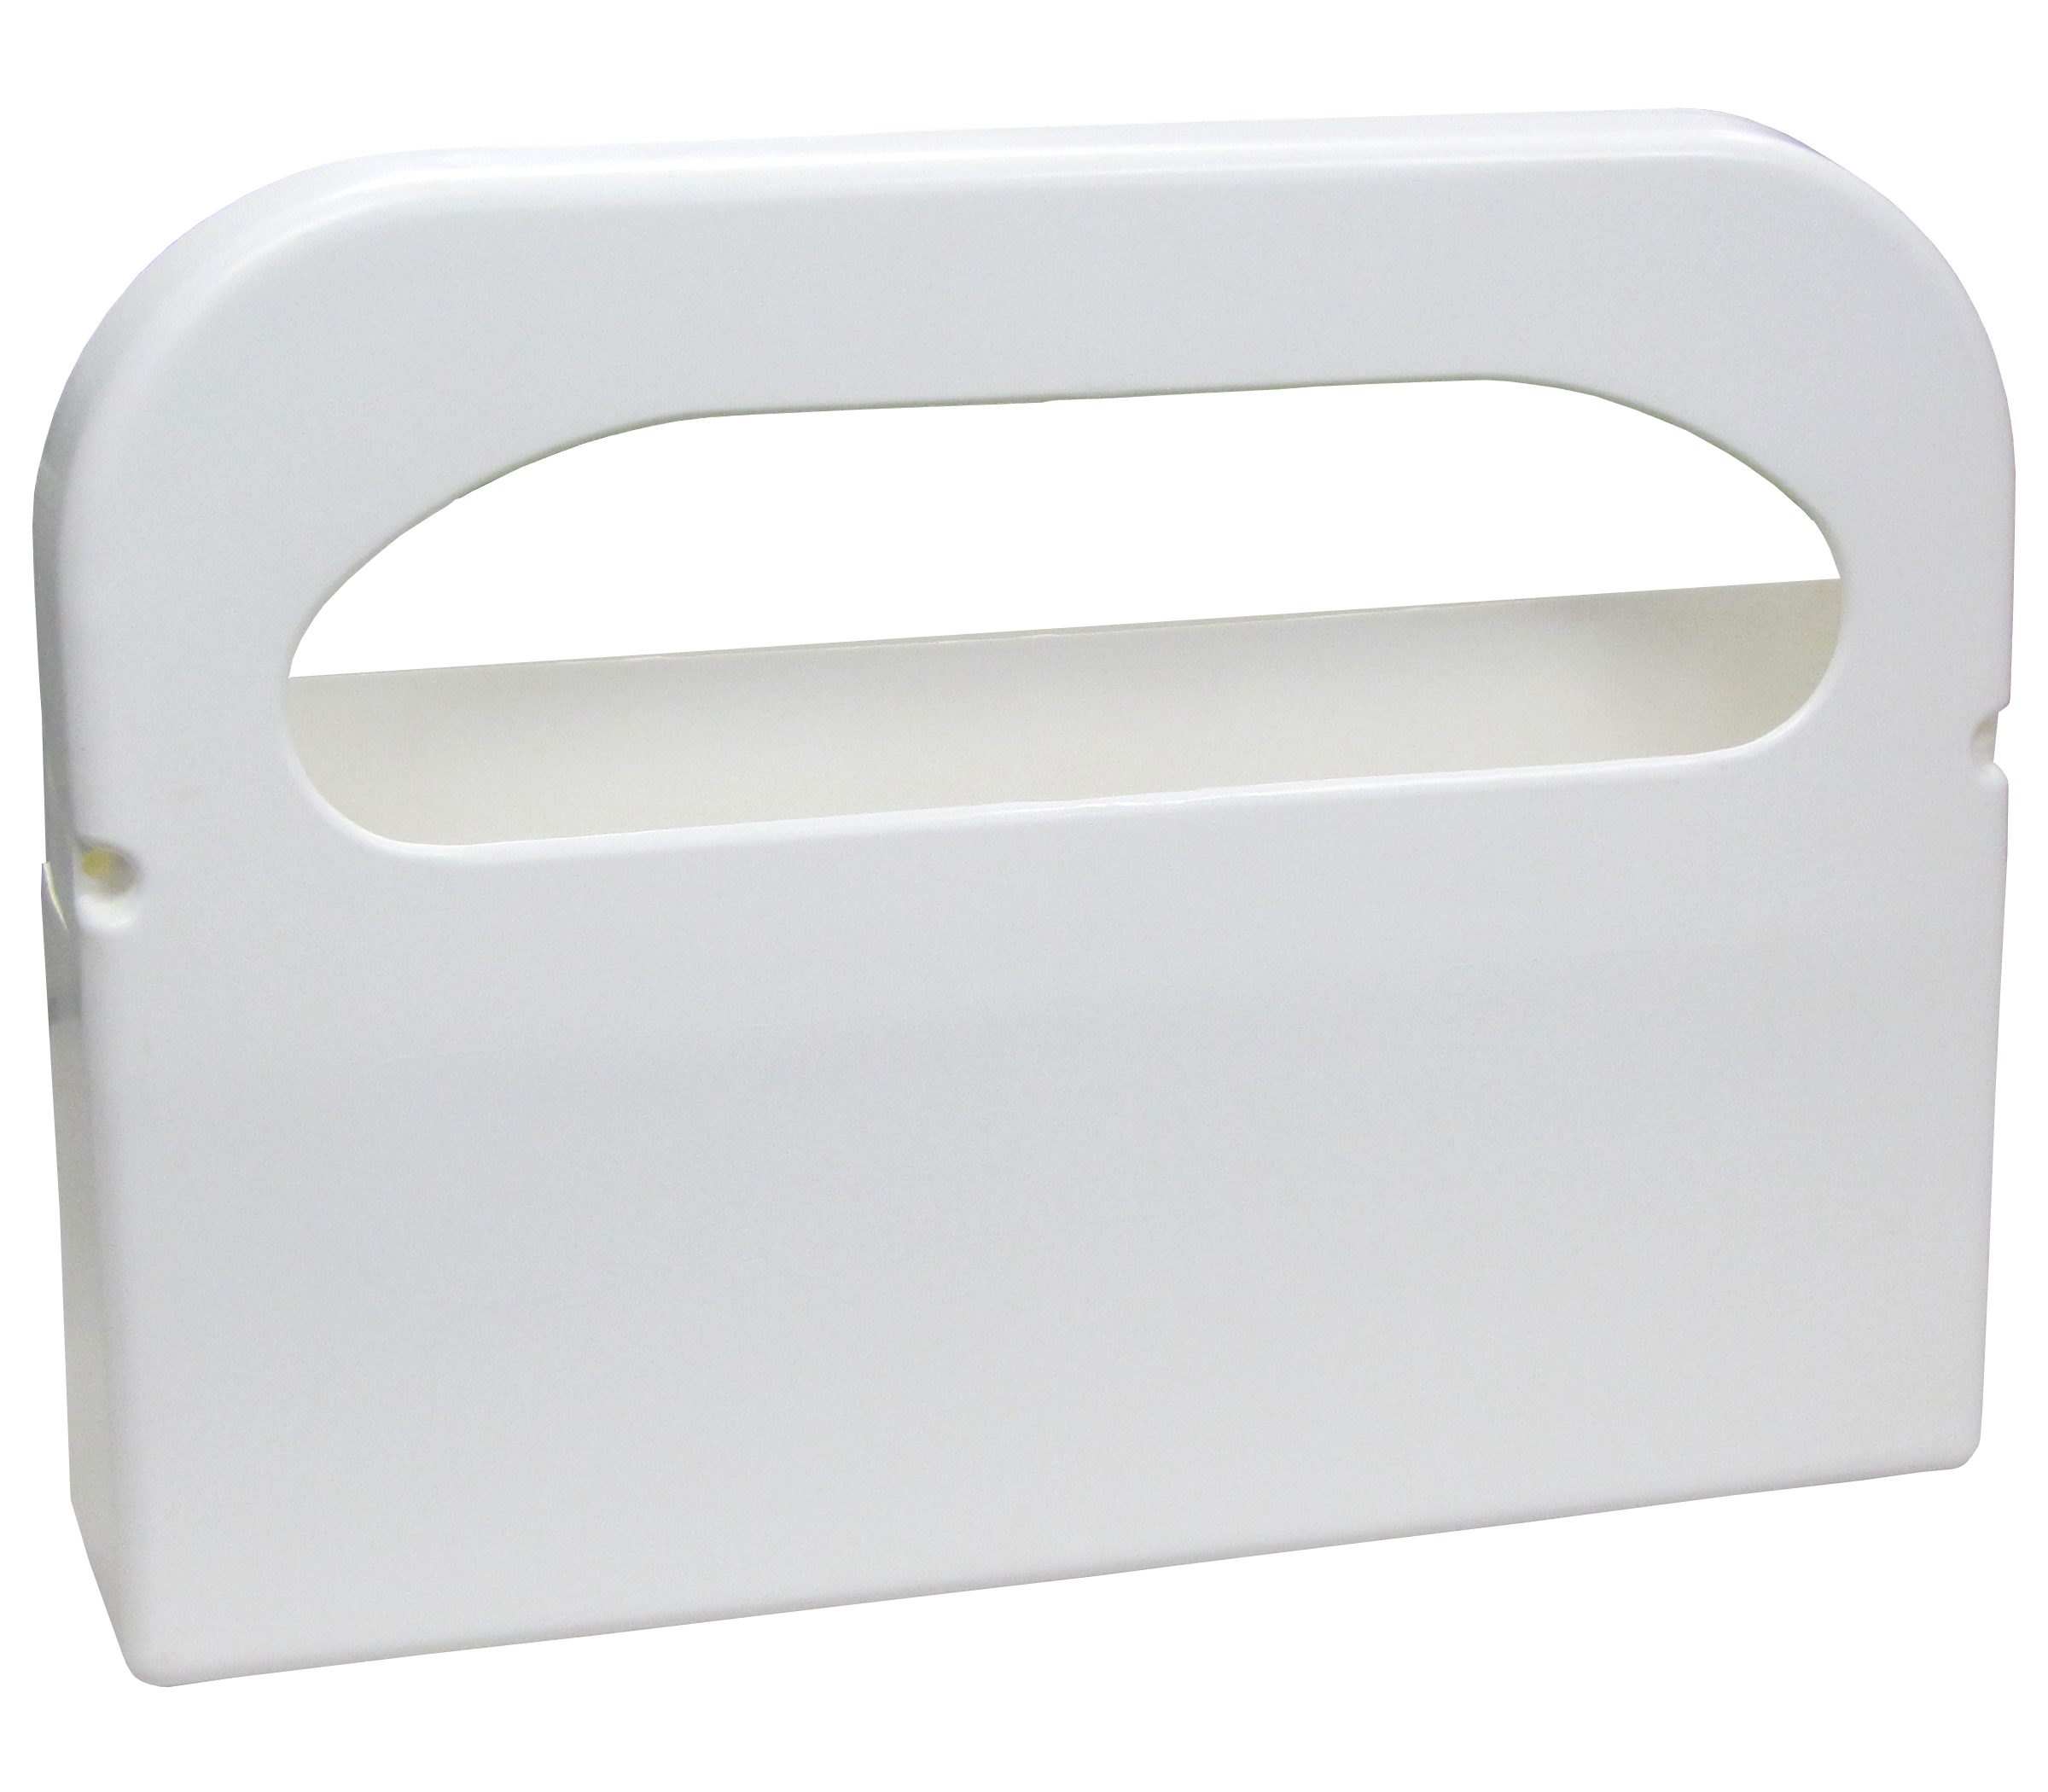 Paper Amp Disposables Toilet Seat Covers Amp Accessories